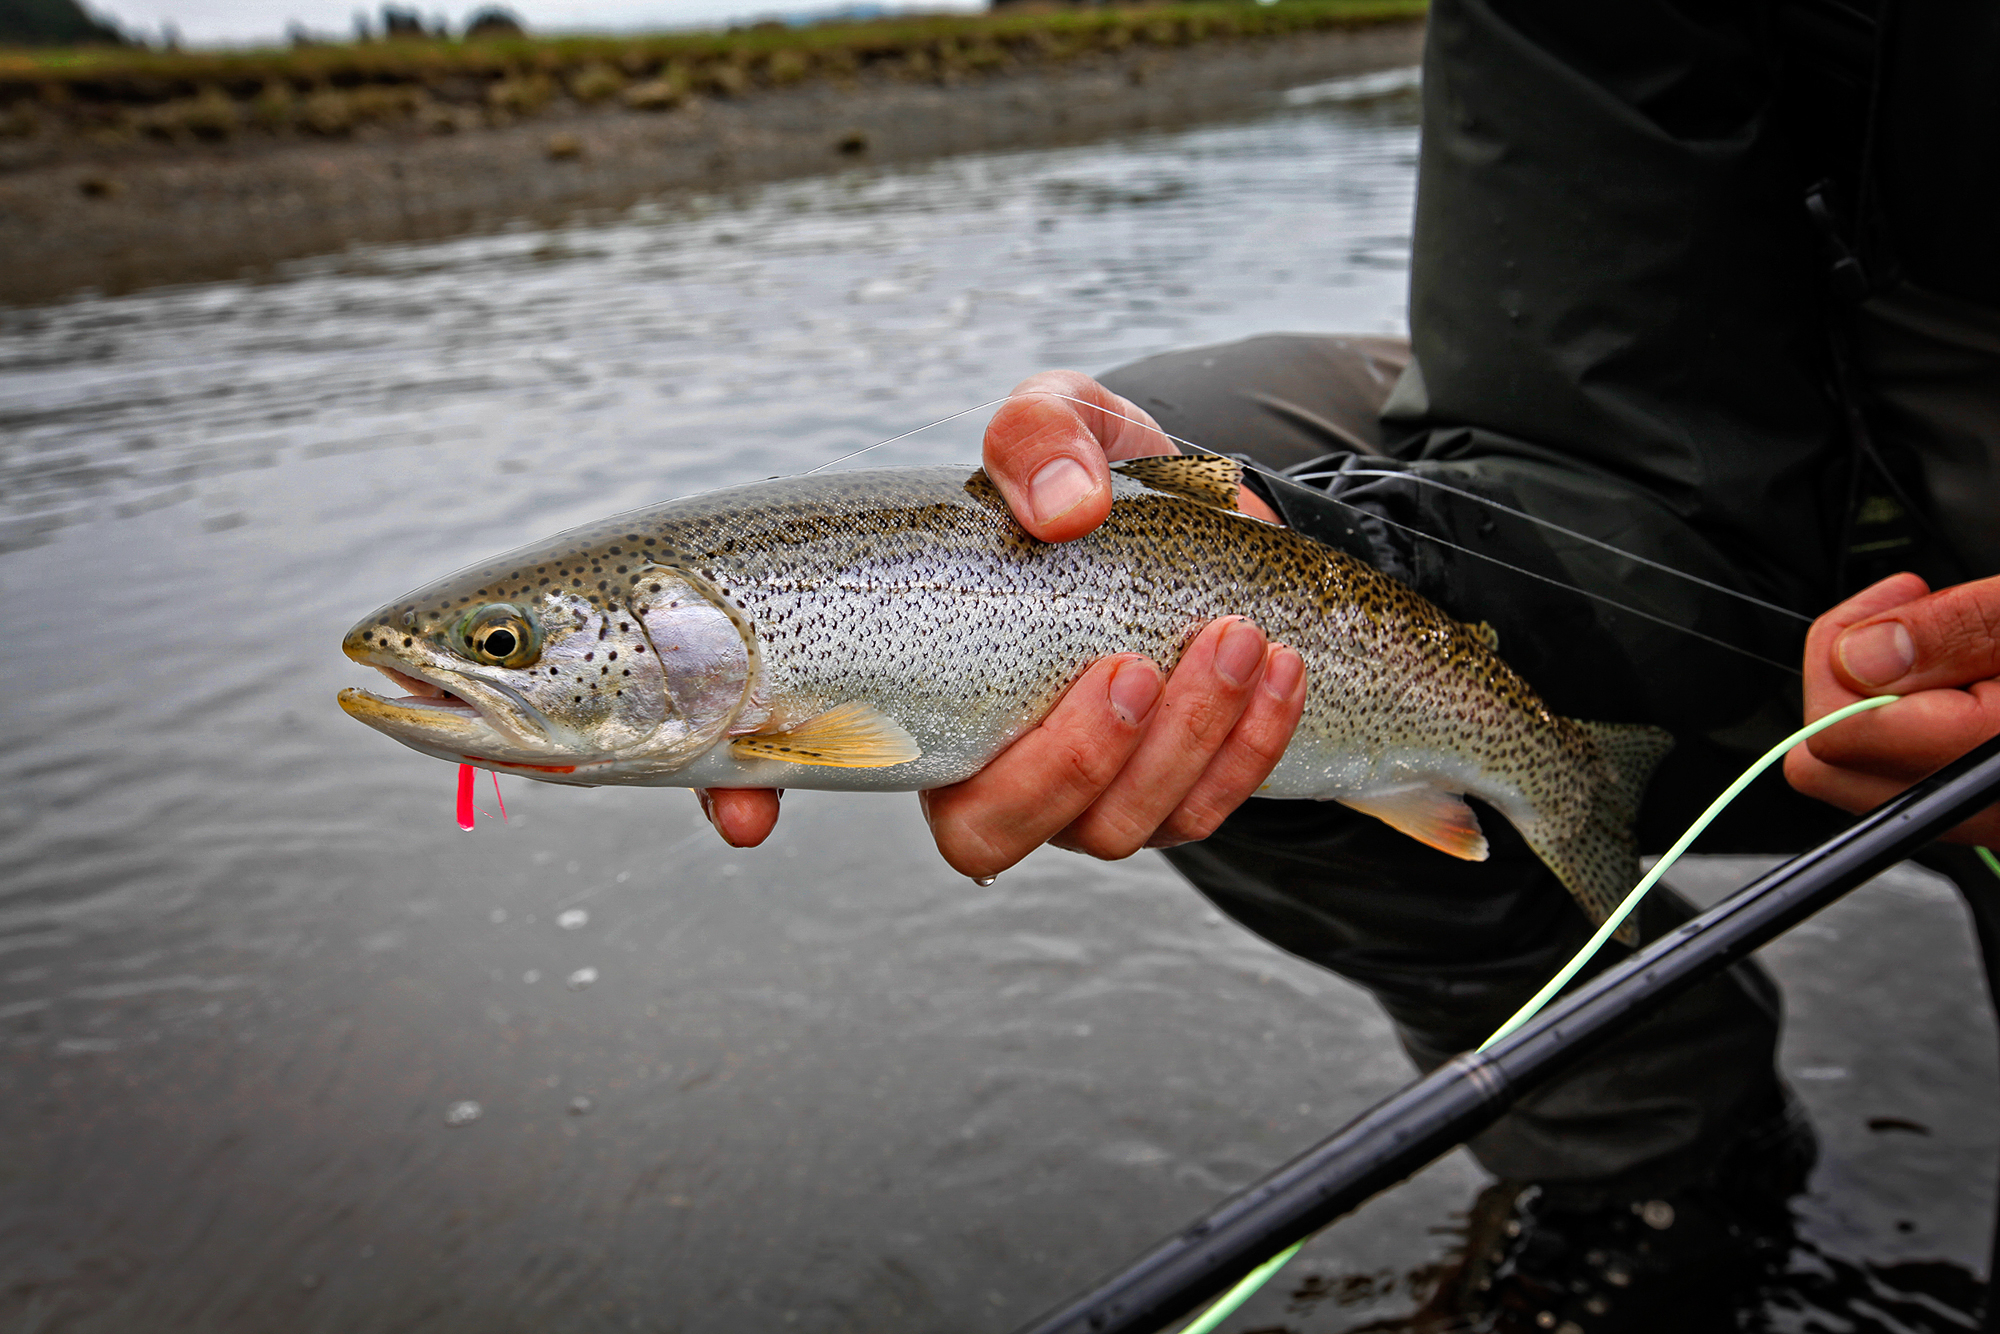 The surprise for the day -- well, aside from how much gut aching laughter is produced by repeatedly catching pacific salmon on surface flies more suited to largemouth bass  -- is this beautiful, feisty cutthroat trout (photo: Earl Harper).